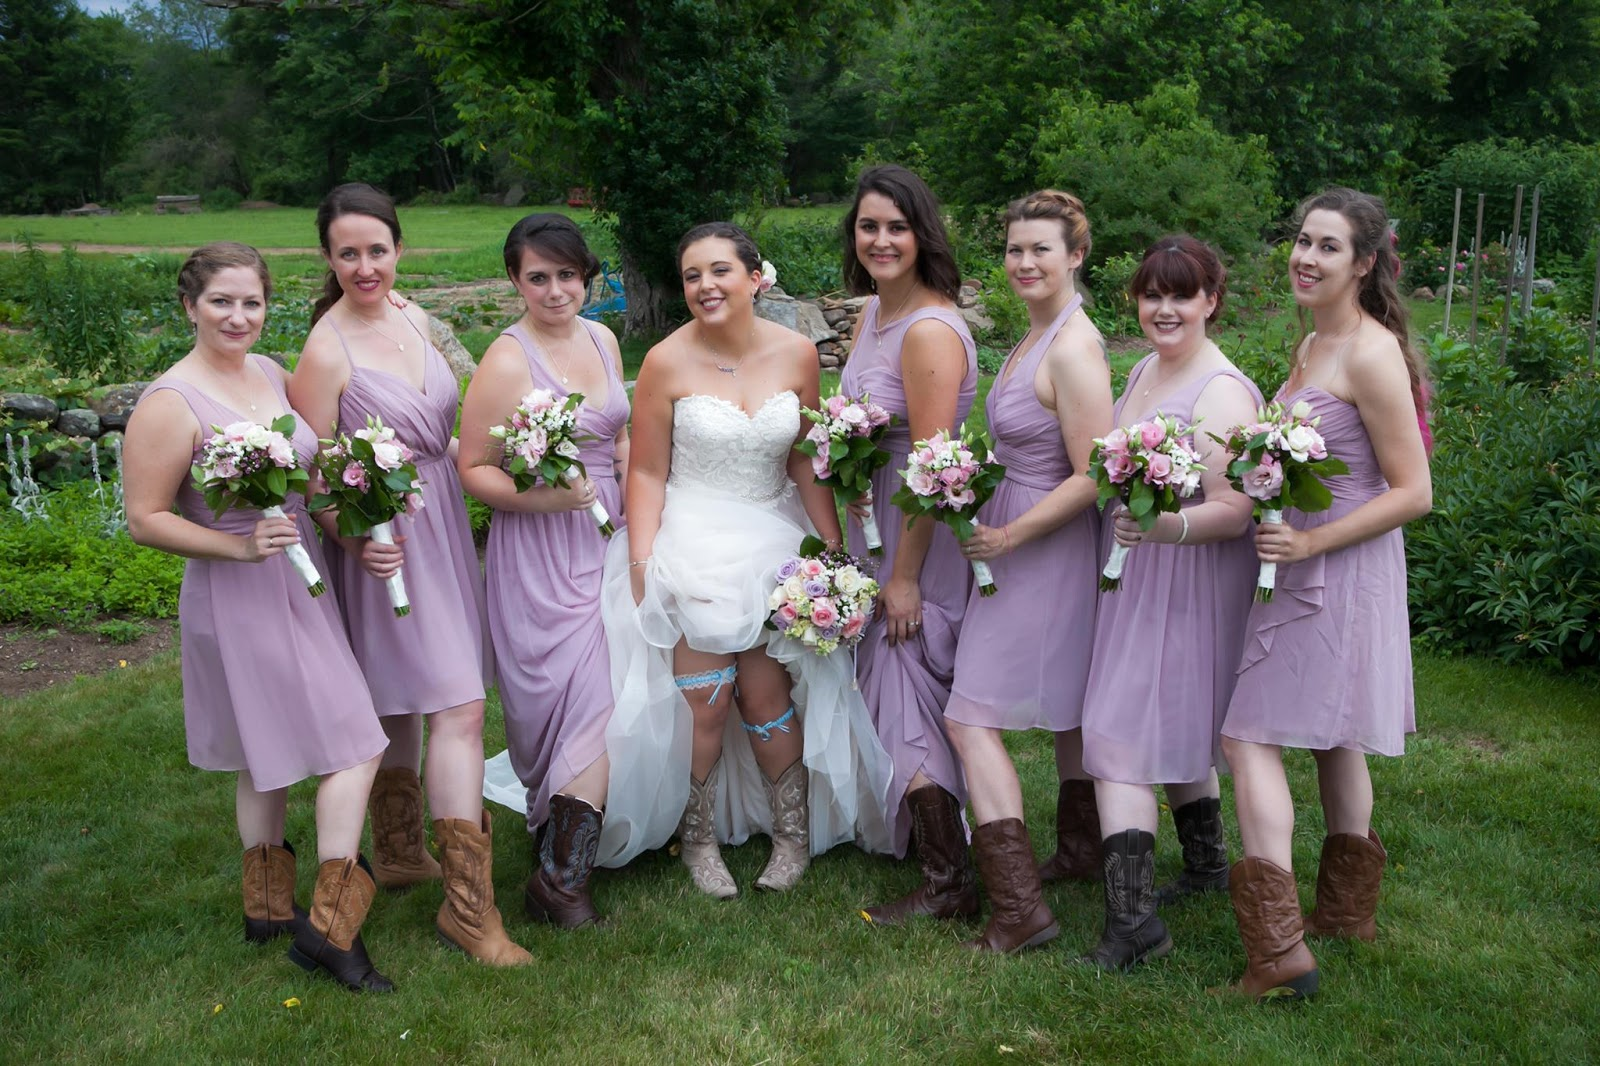 I Ve Always Loved Purple And Rose So Those Colors Were Prominent Throughout Our Wedding With Bits Of Yellow As A Highlight Let My Bridesmaids Pick